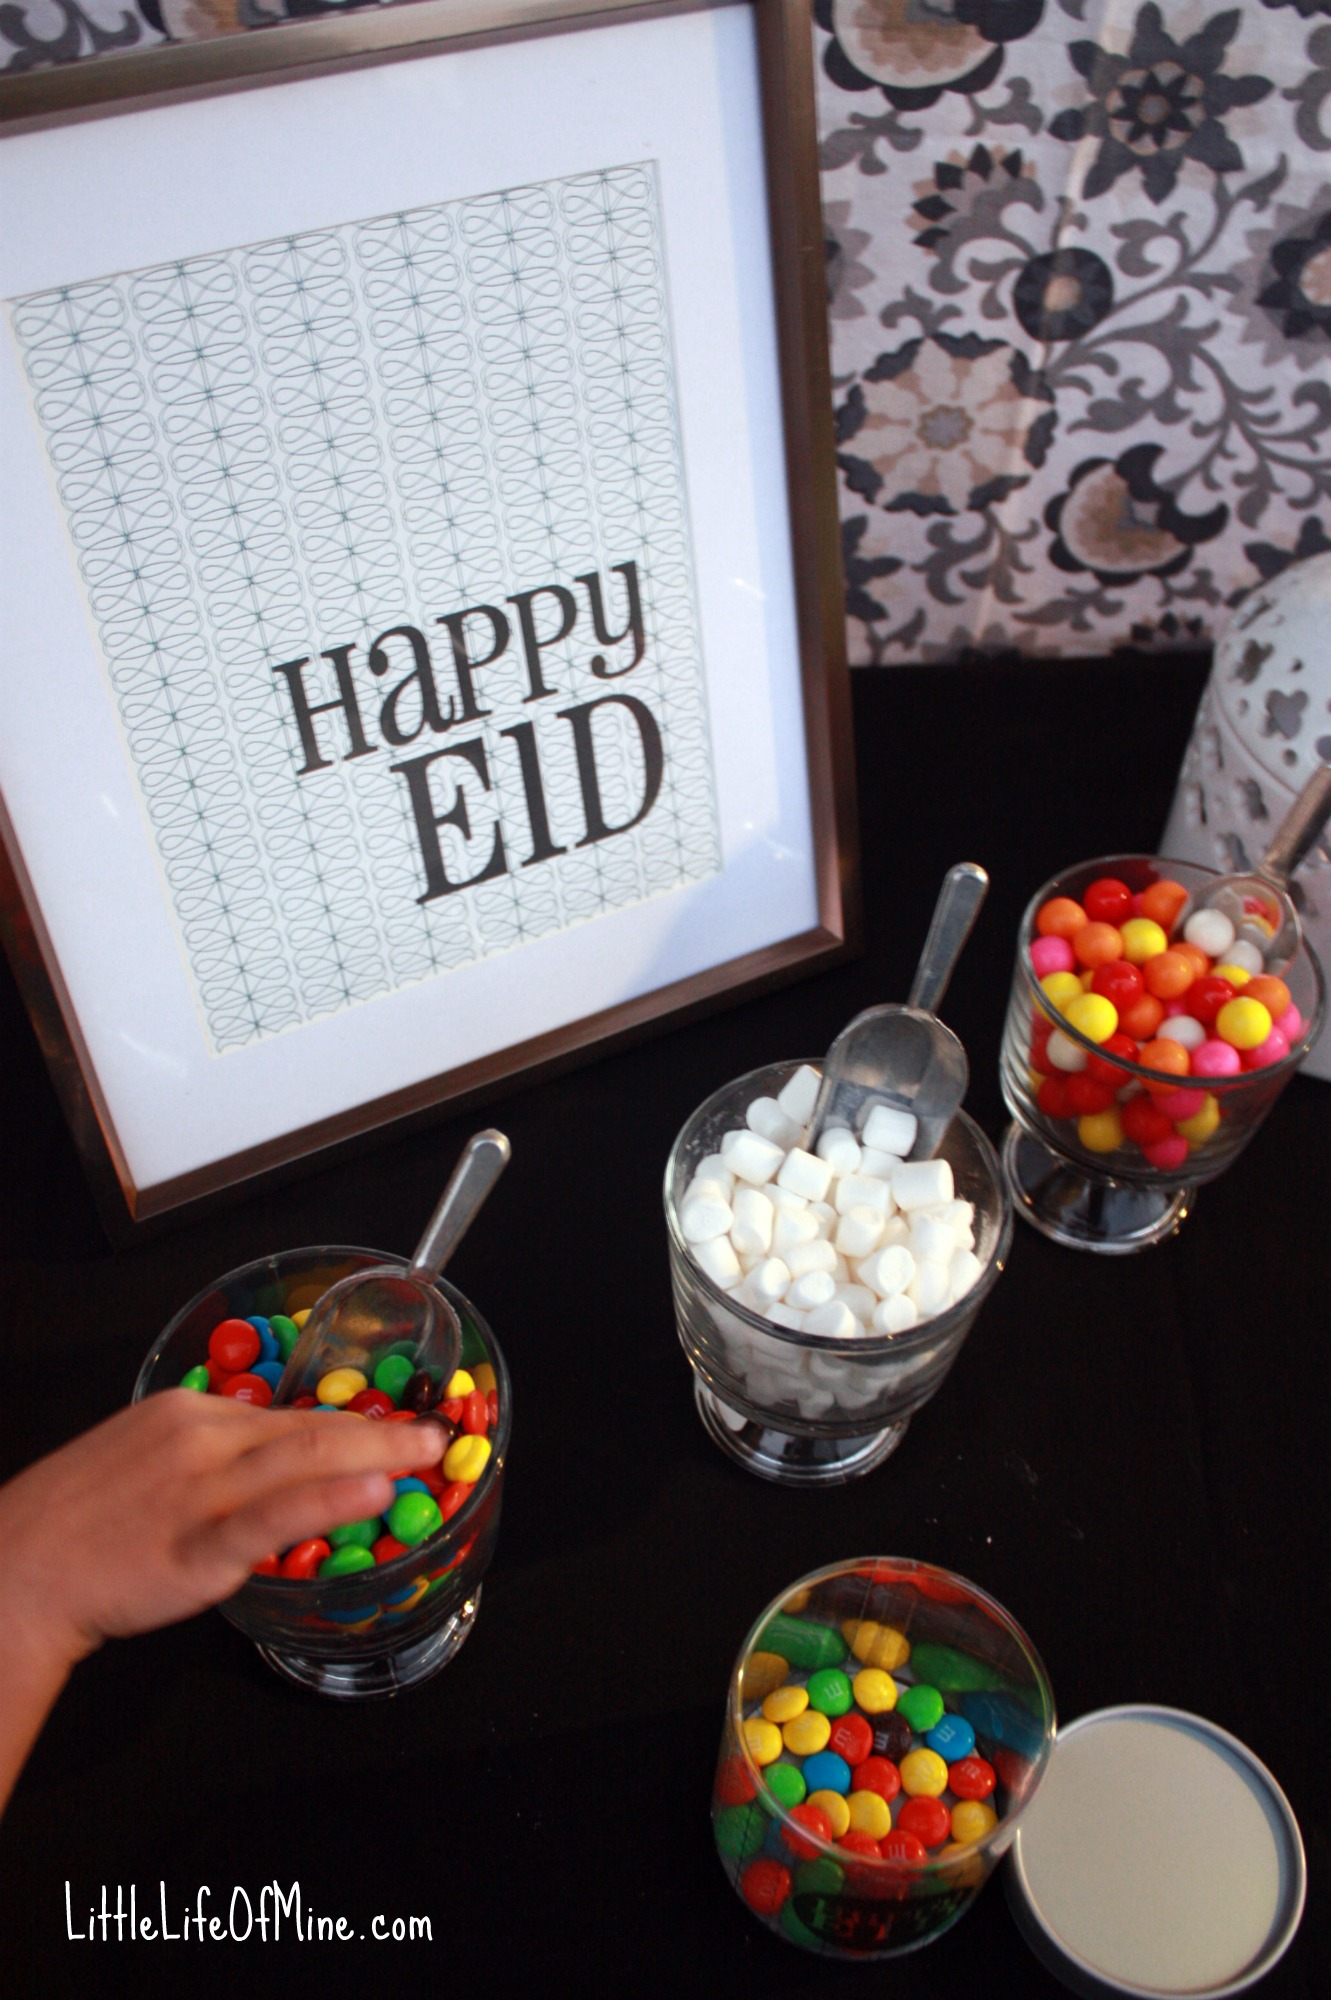 Celebrate in Style With Modern Eid Decorations - littlelifeofmine.com